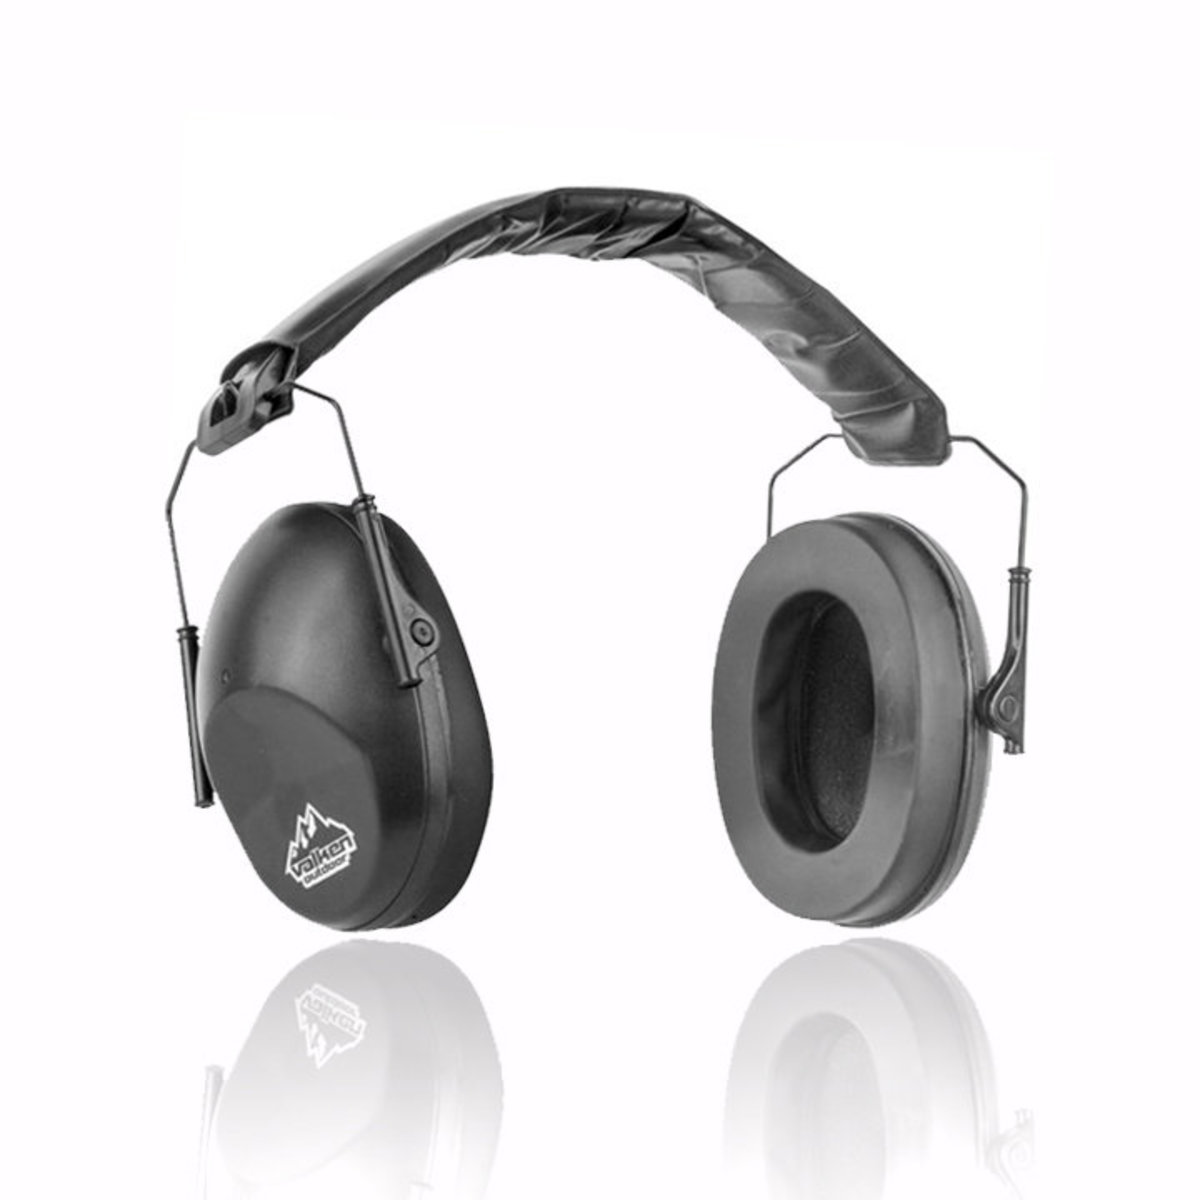 View larger image of Valken Ear Shieldz Low Profile Full Cover Earmuffs